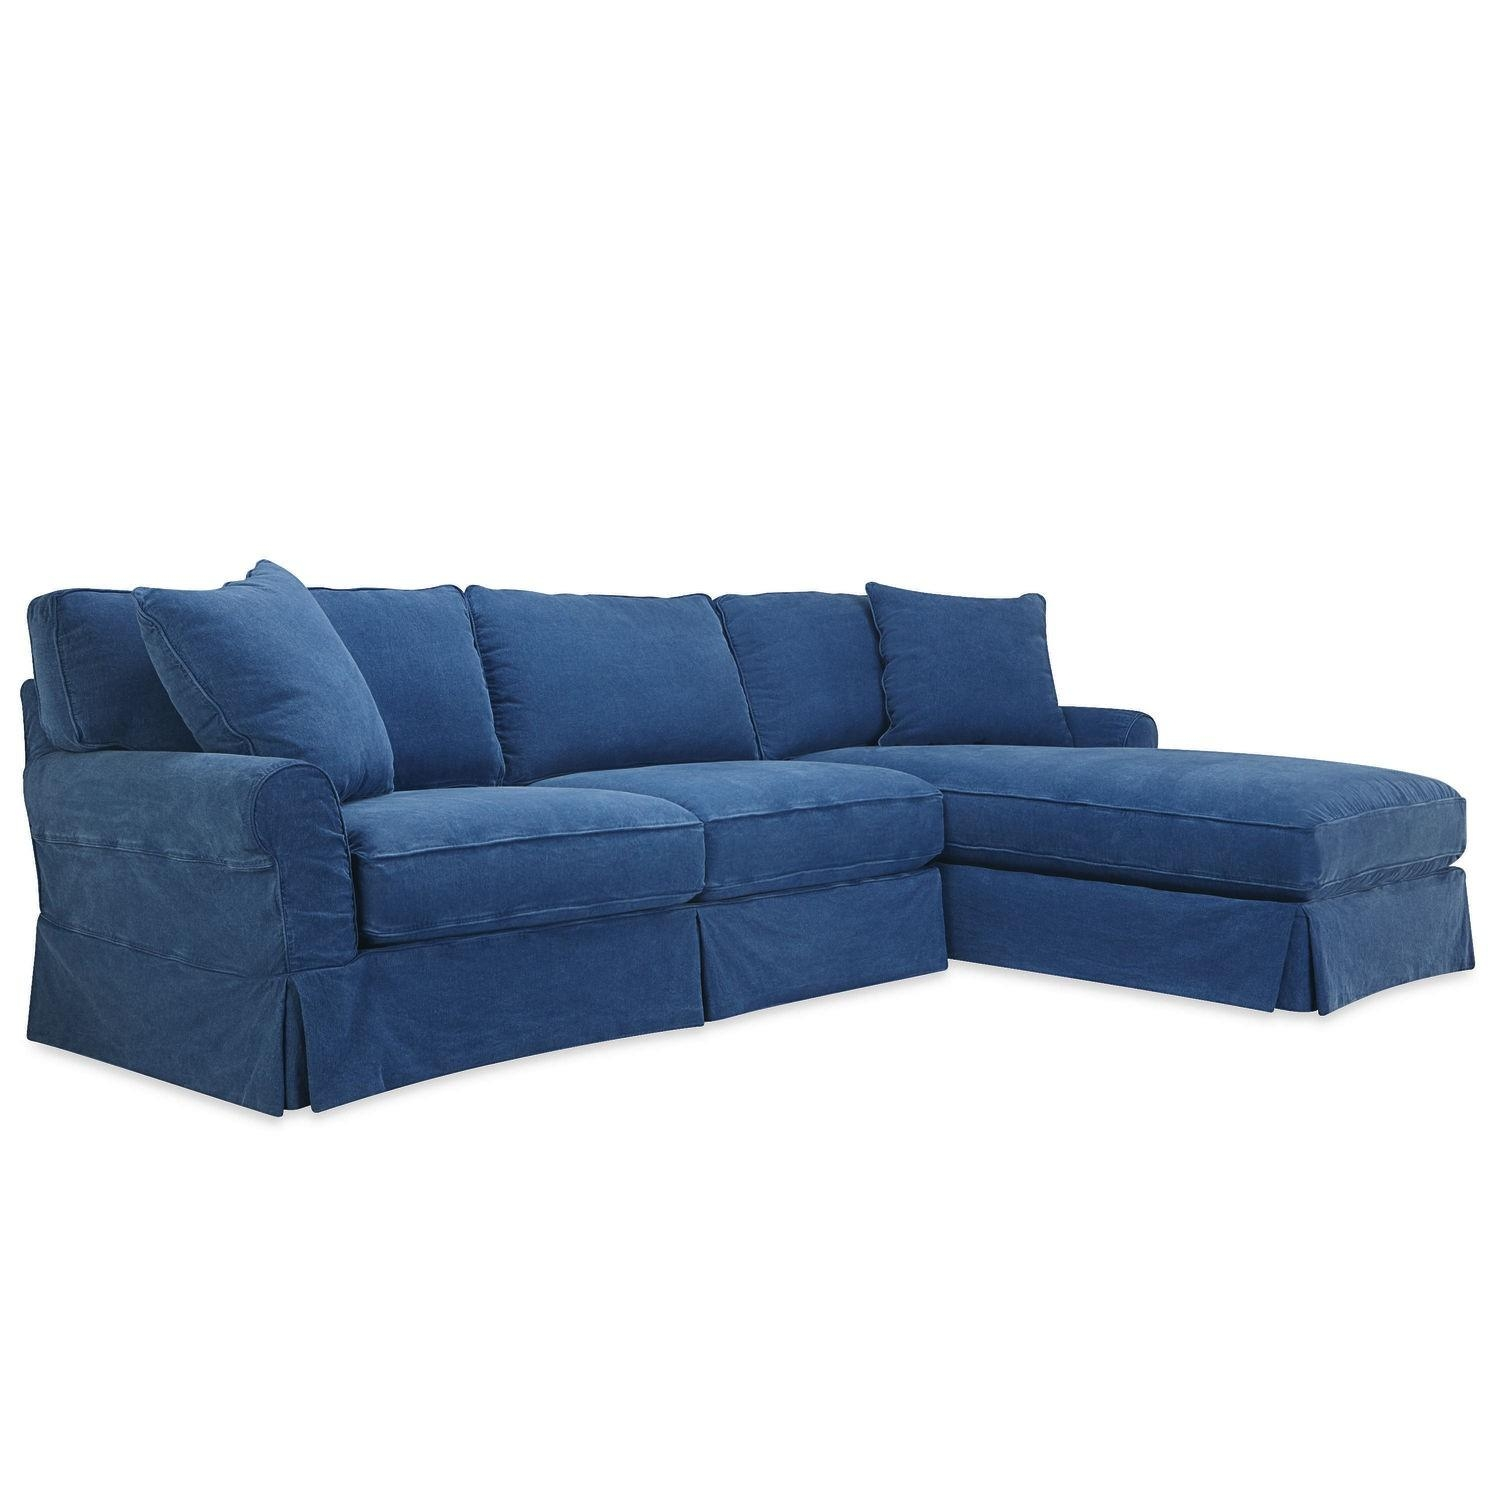 American Furniture | Nantucket Chaise Sectional | Lee Industries Regarding Lee Industries Sectional (Image 3 of 20)